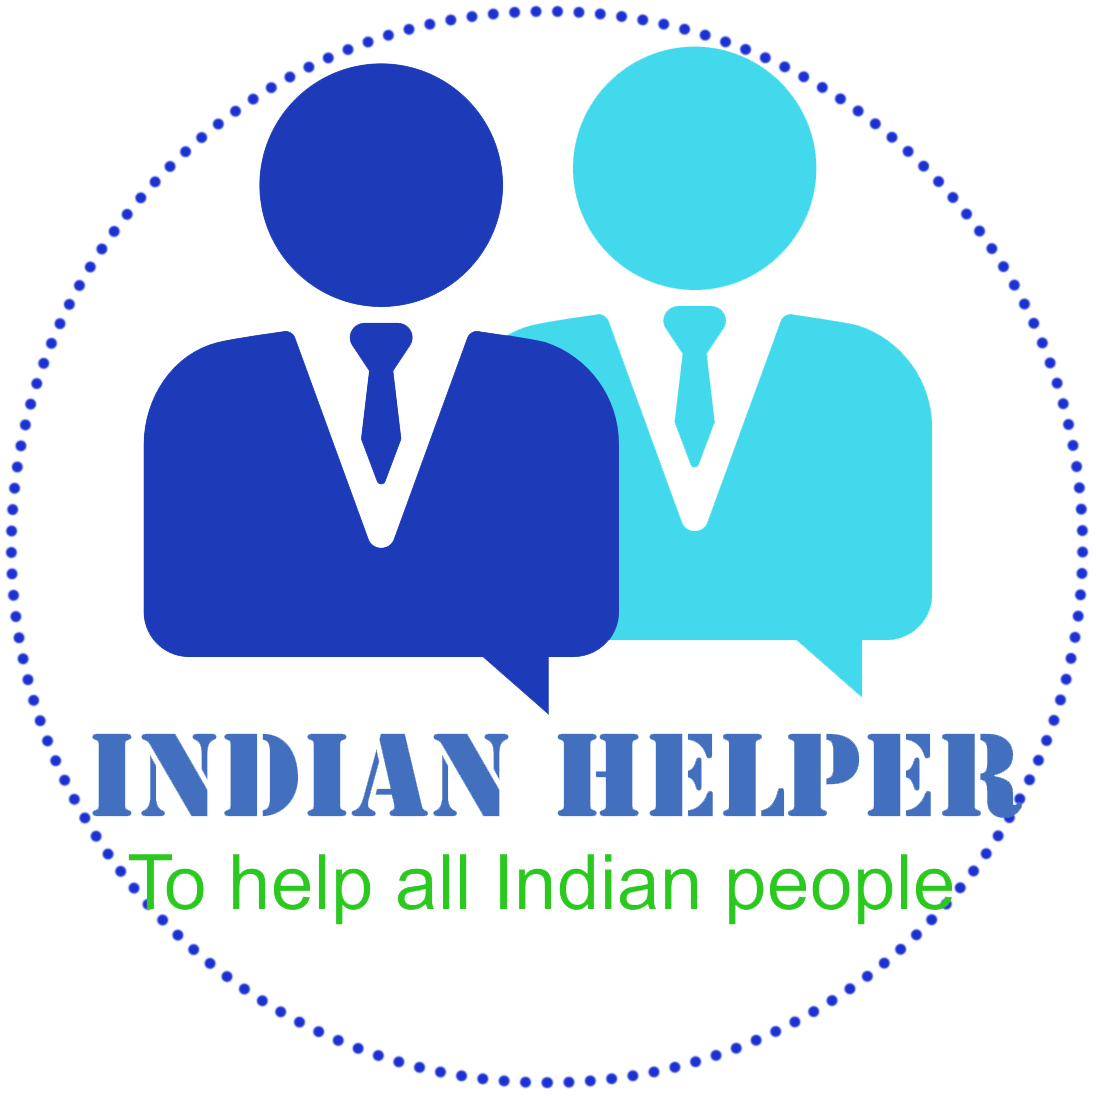 Indian Helper